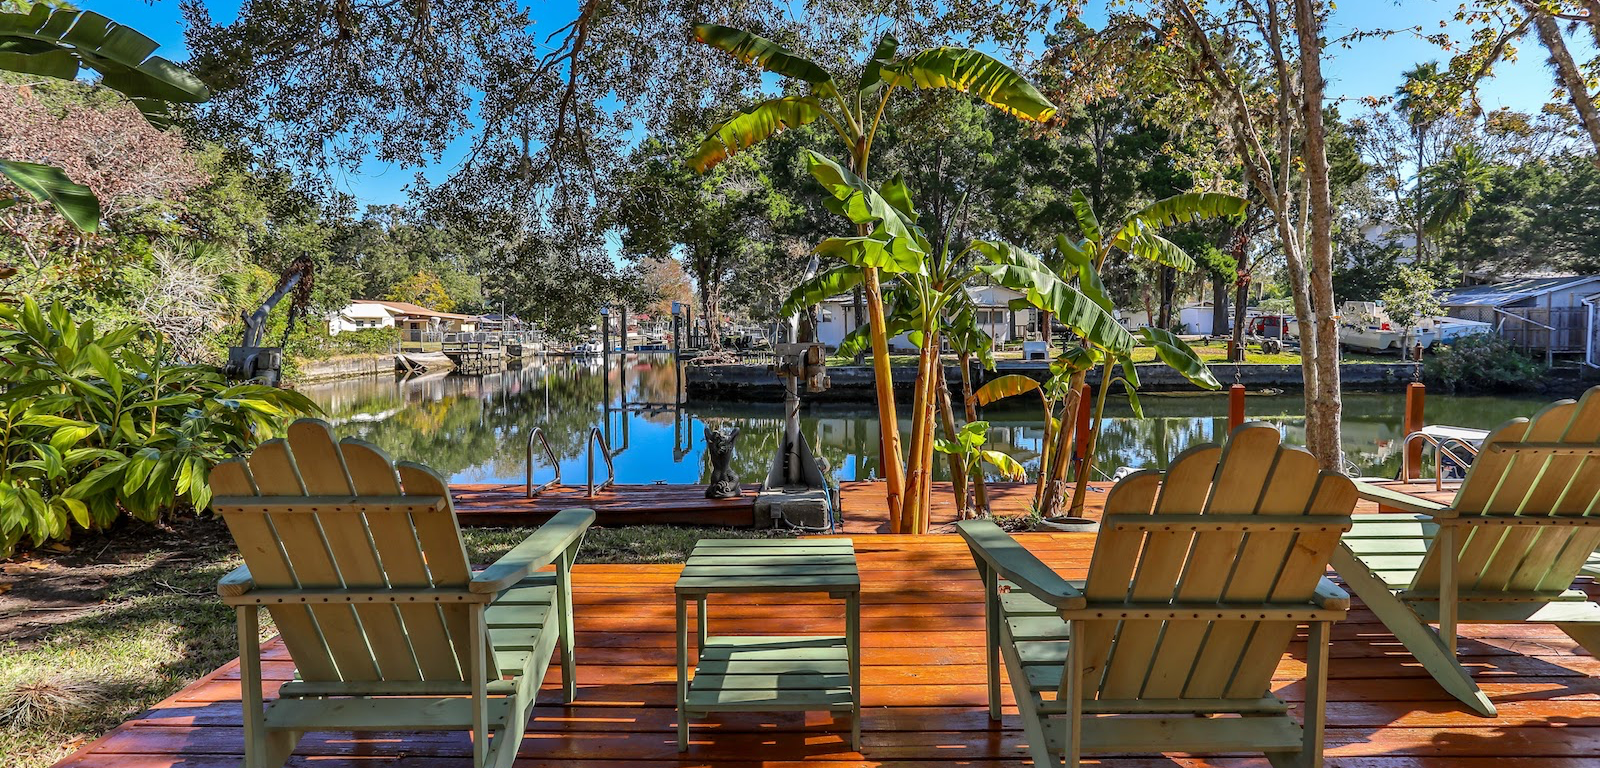 Weeki Wachee - sunbathing chair